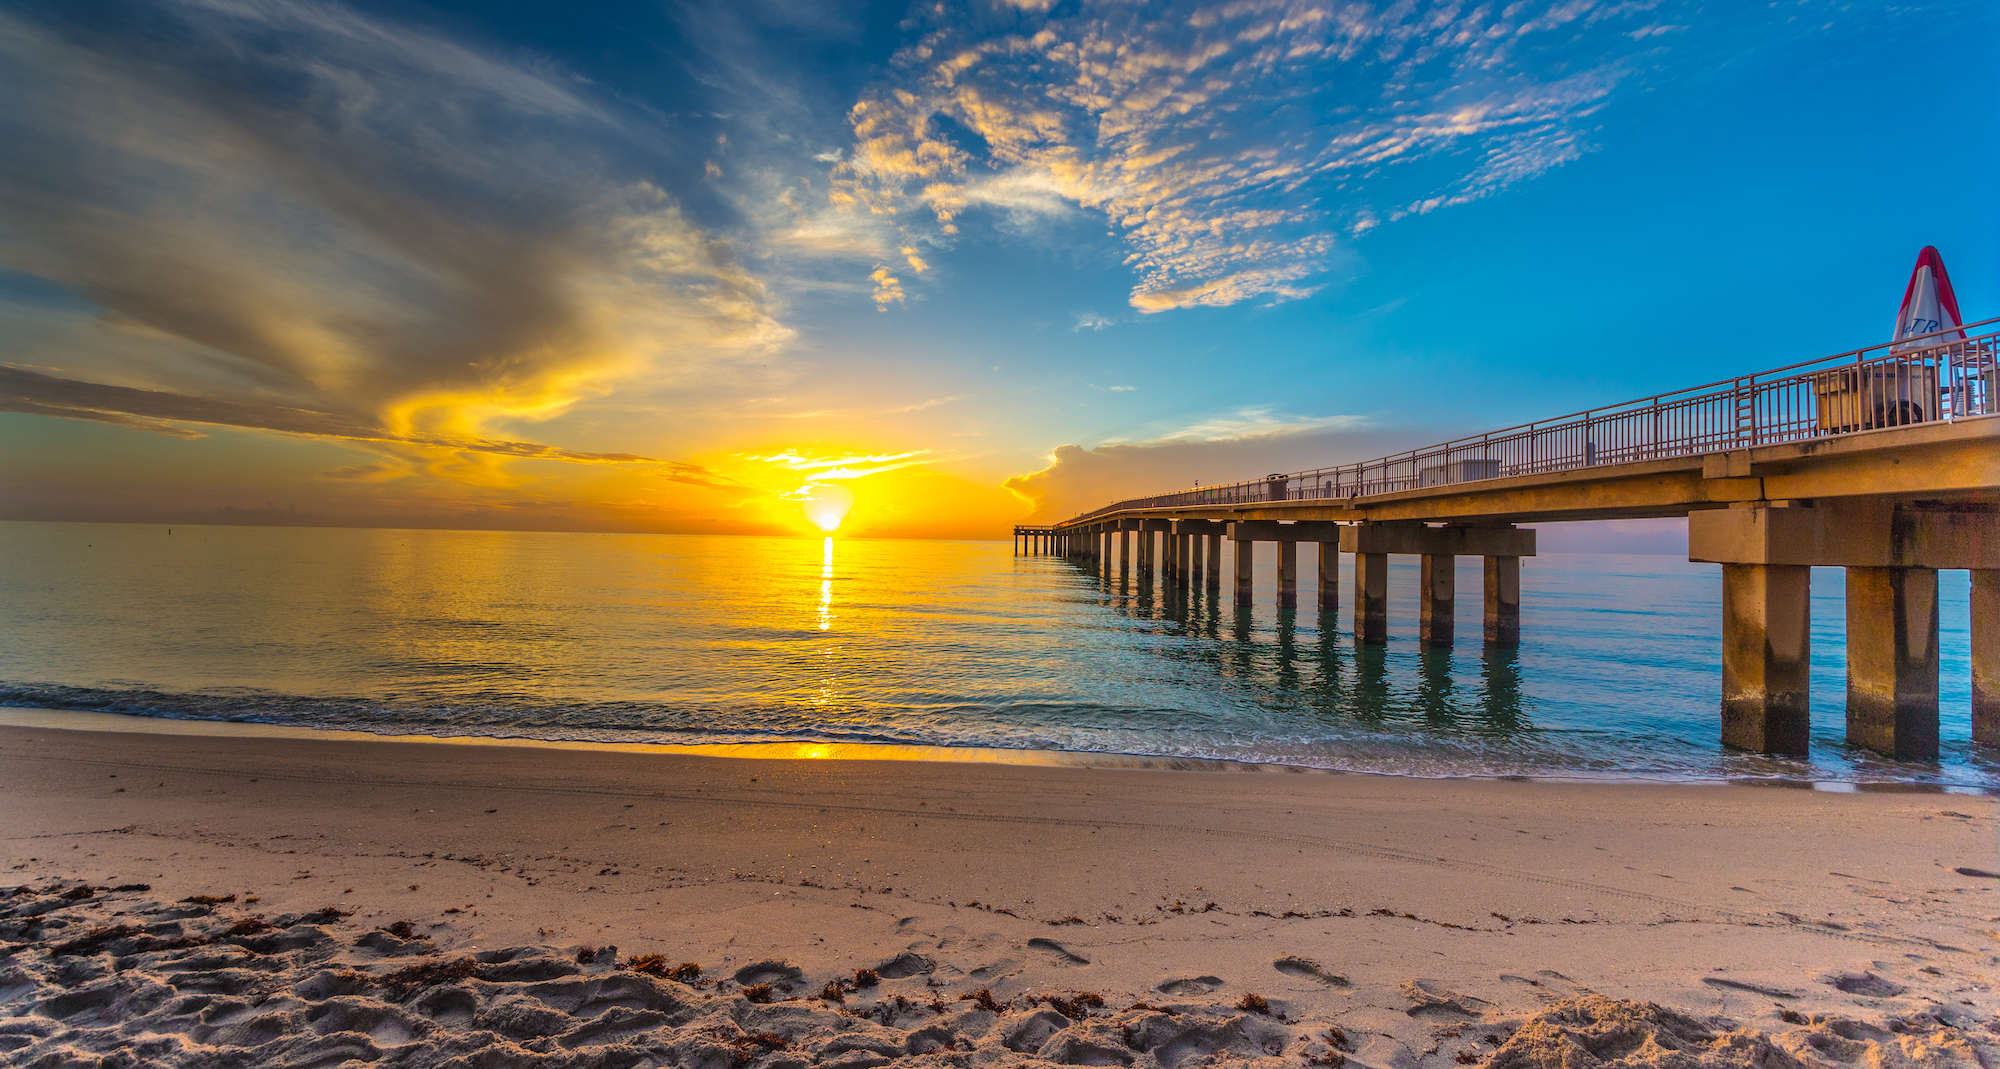 Sun rising over the ocean by the Newport Fishing Pier